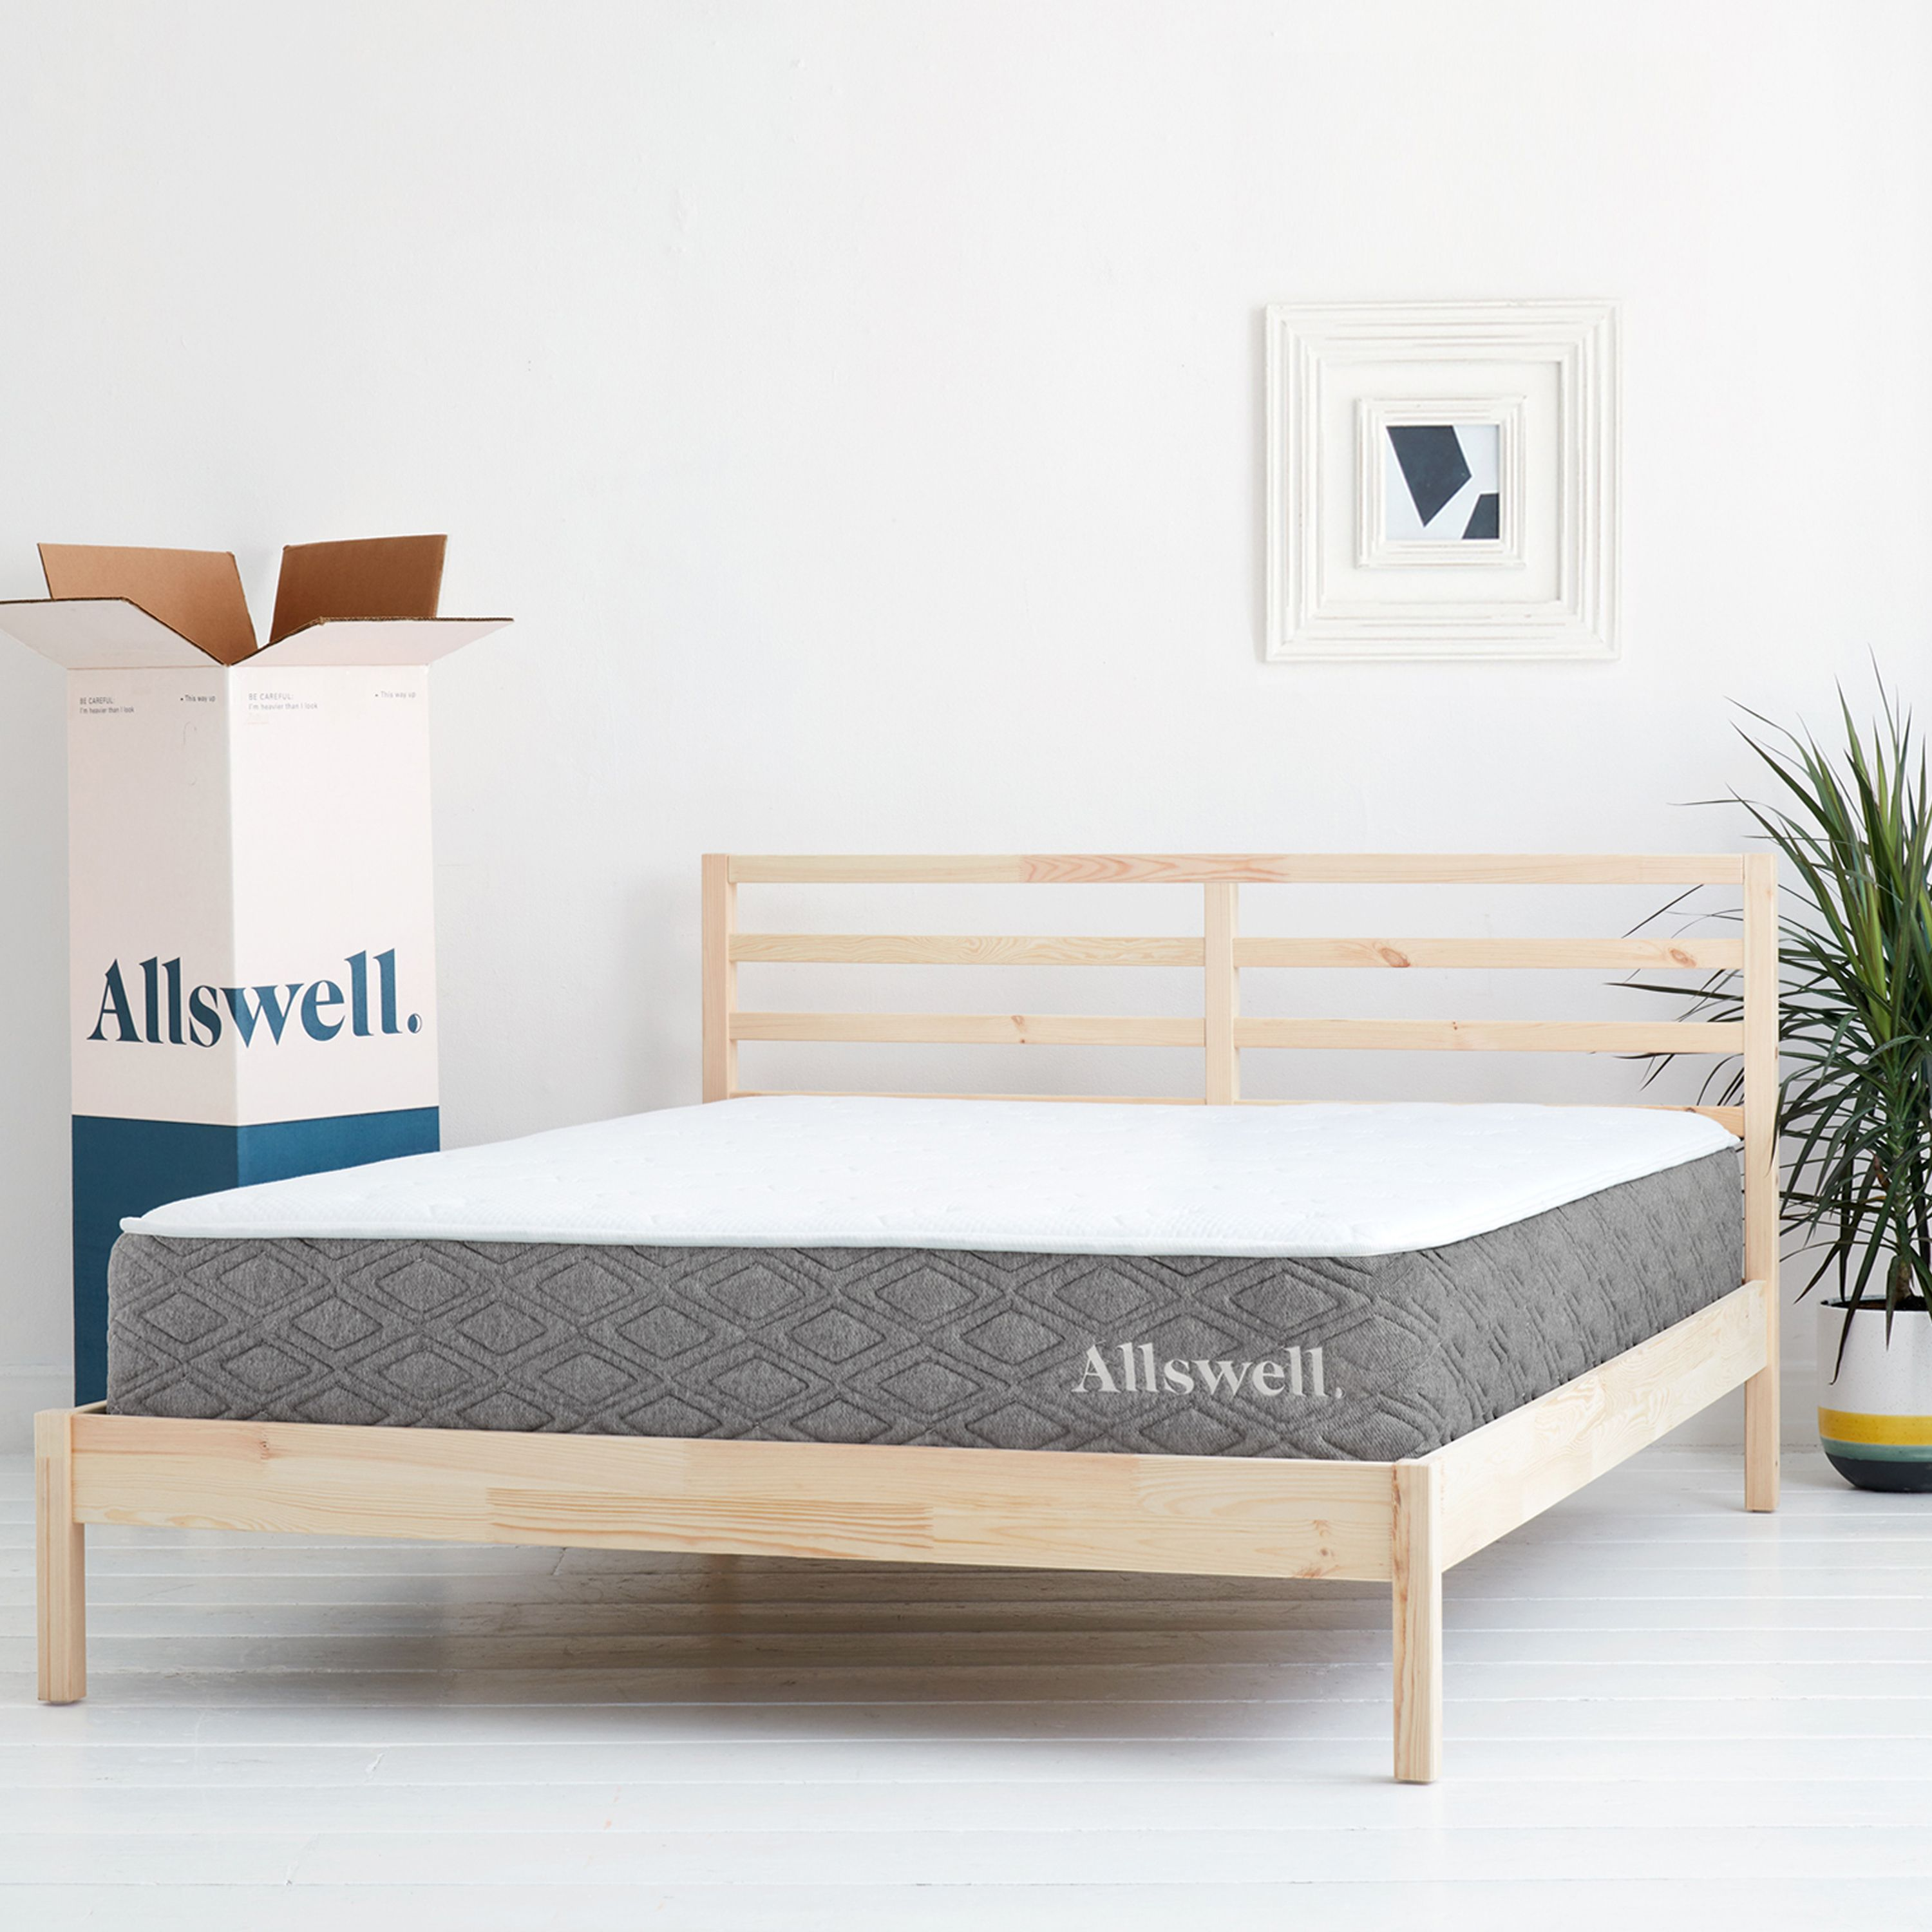 The Allswell Luxe Hybrid 12 Inch Bed In A Box Hybrid Mattress Queen Walmart Com In 2020 Box Bed Queen Mattress Hybrid Mattress